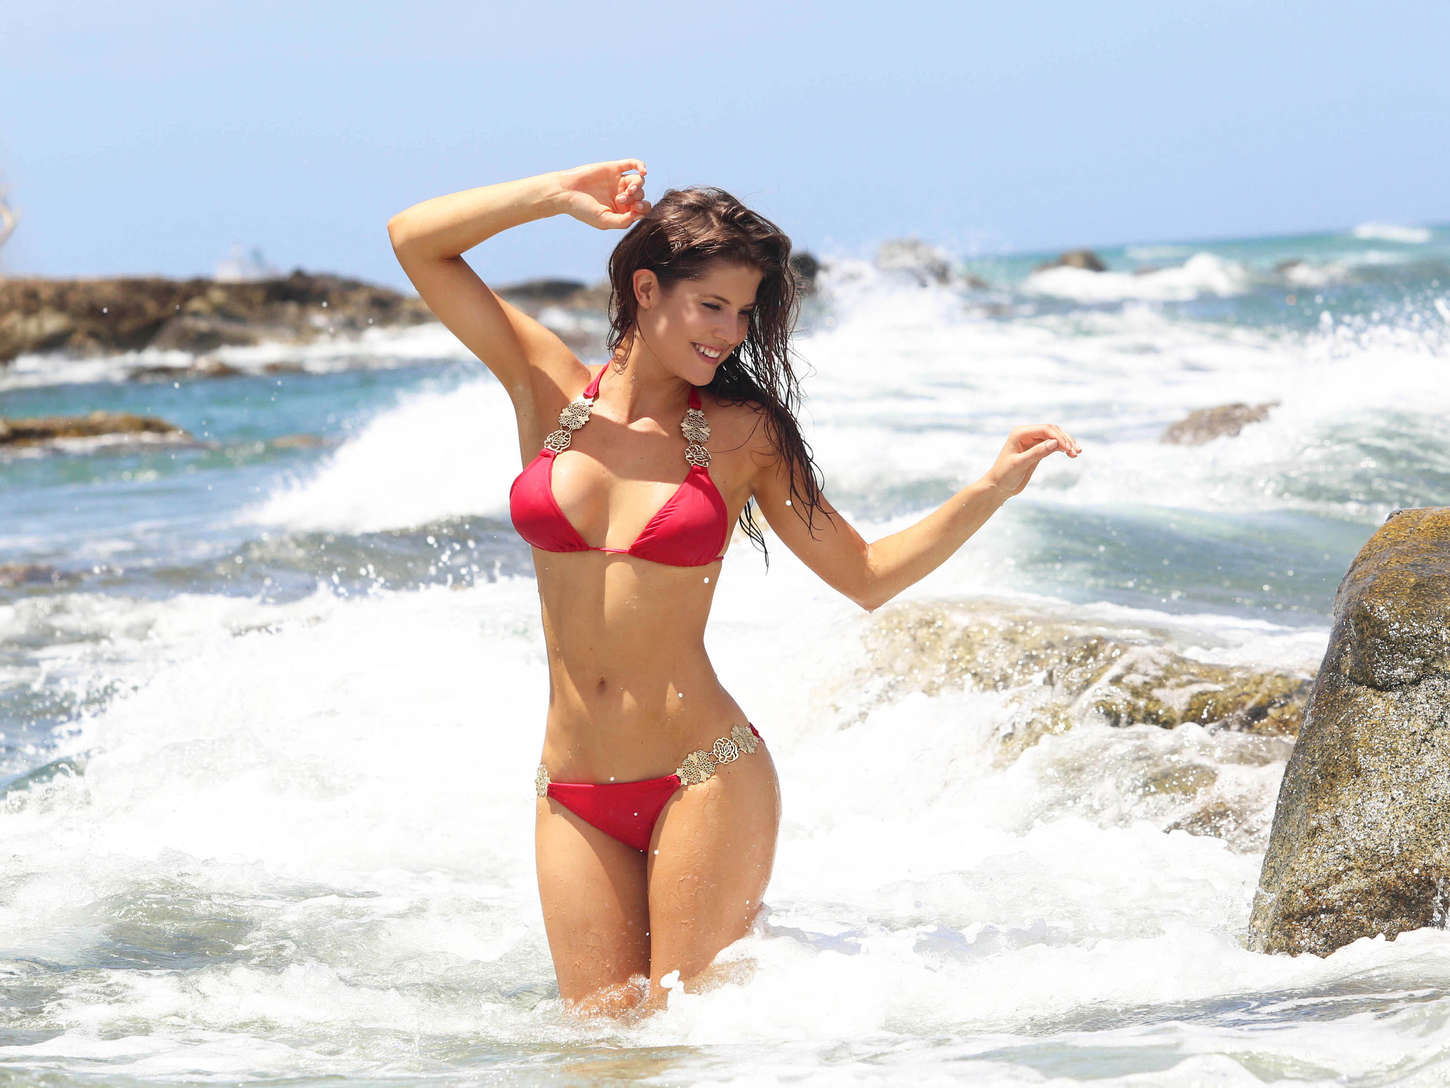 Amanda Cerny wearing a red bikini filming music video in Aruba